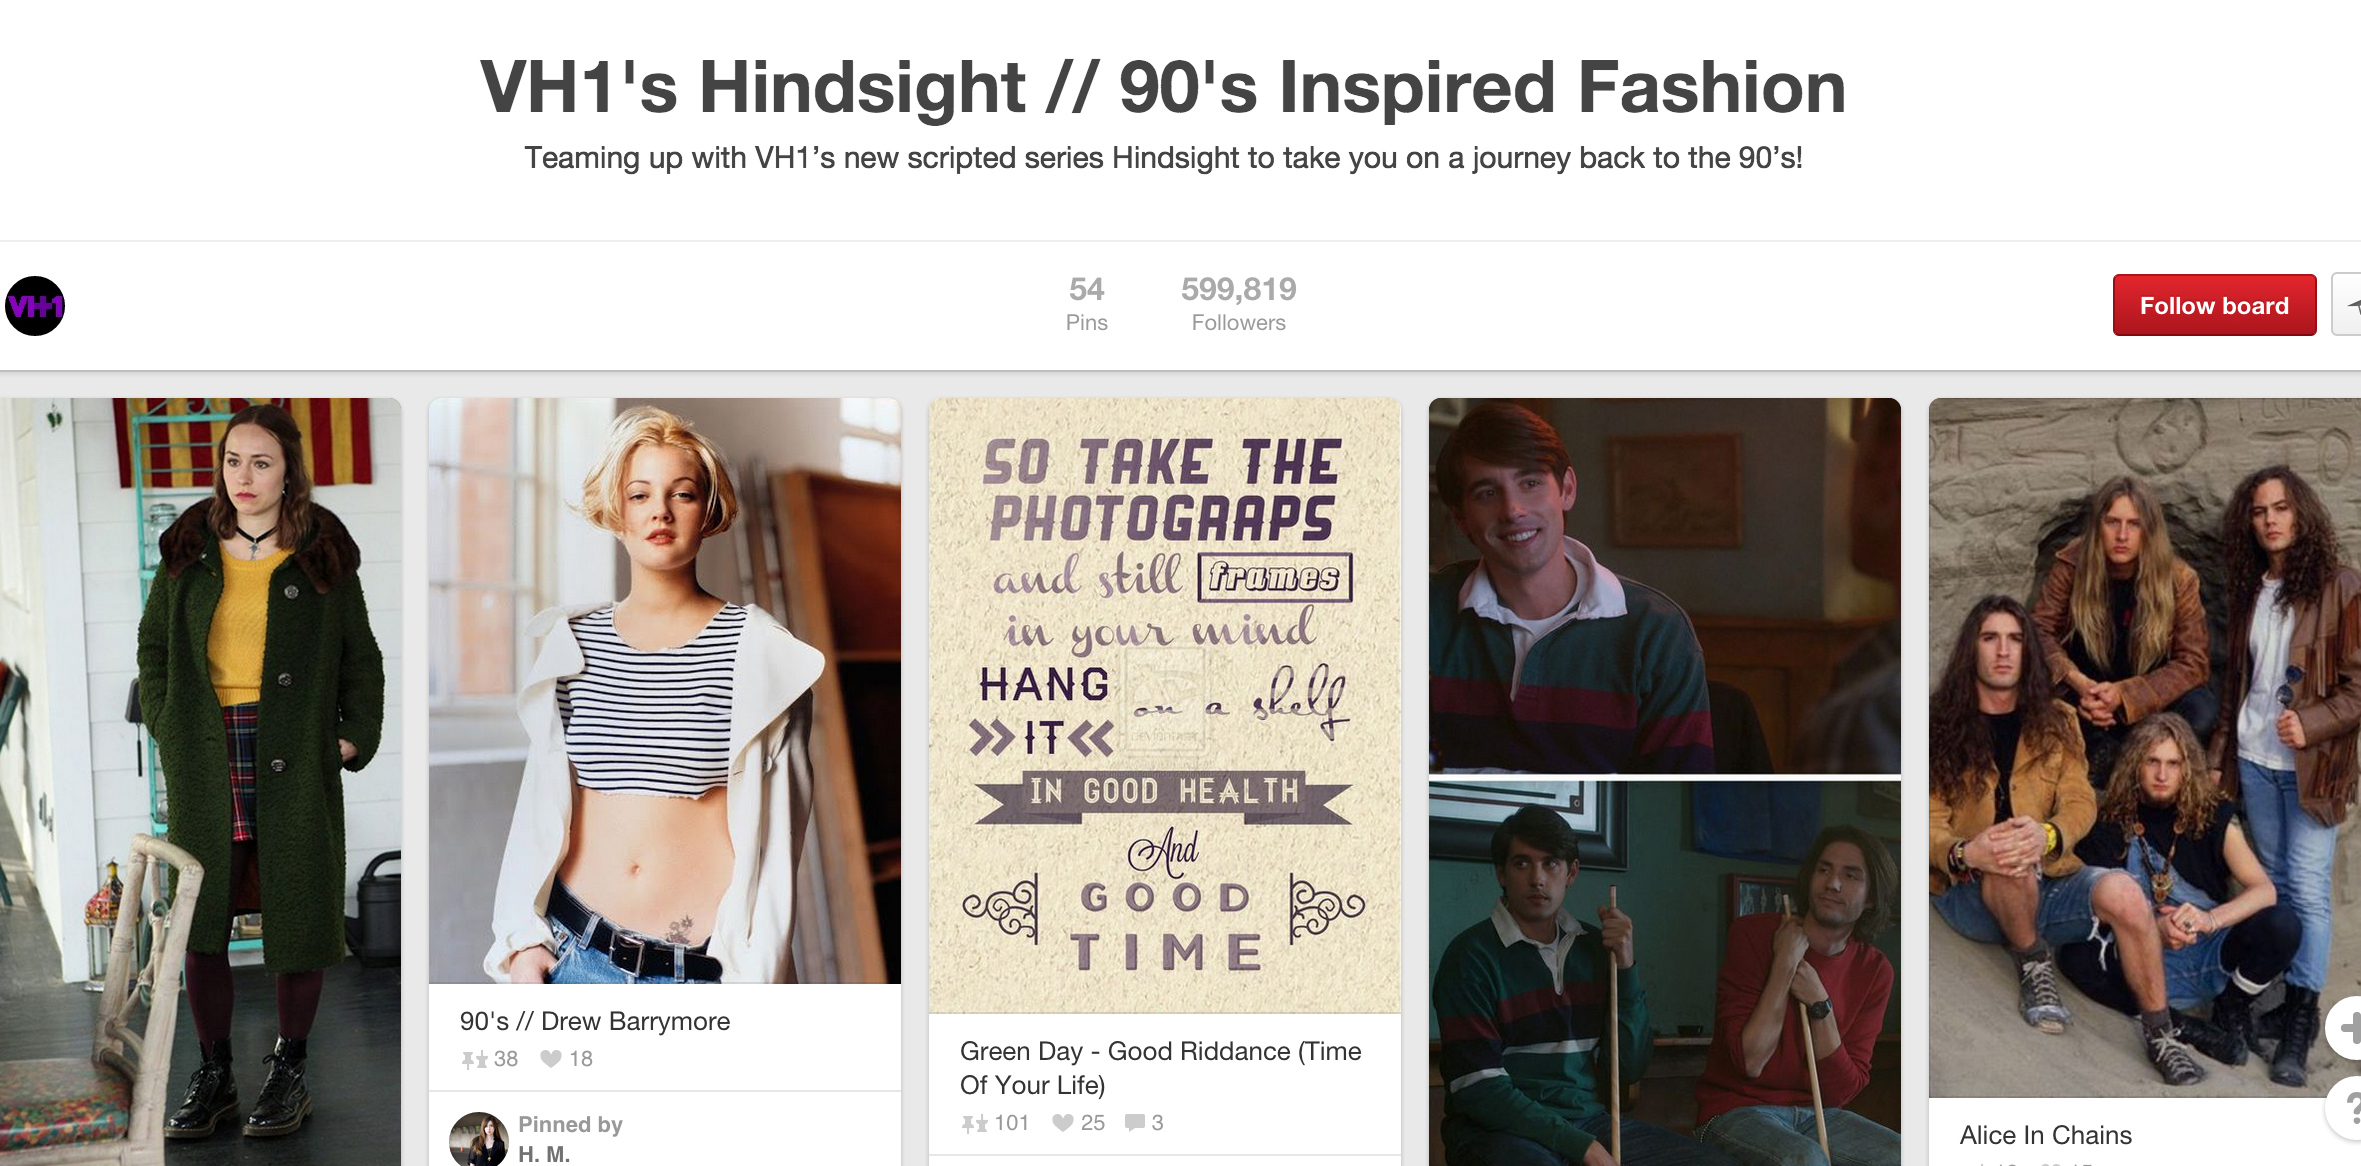 VH1 Pinterest for Communications